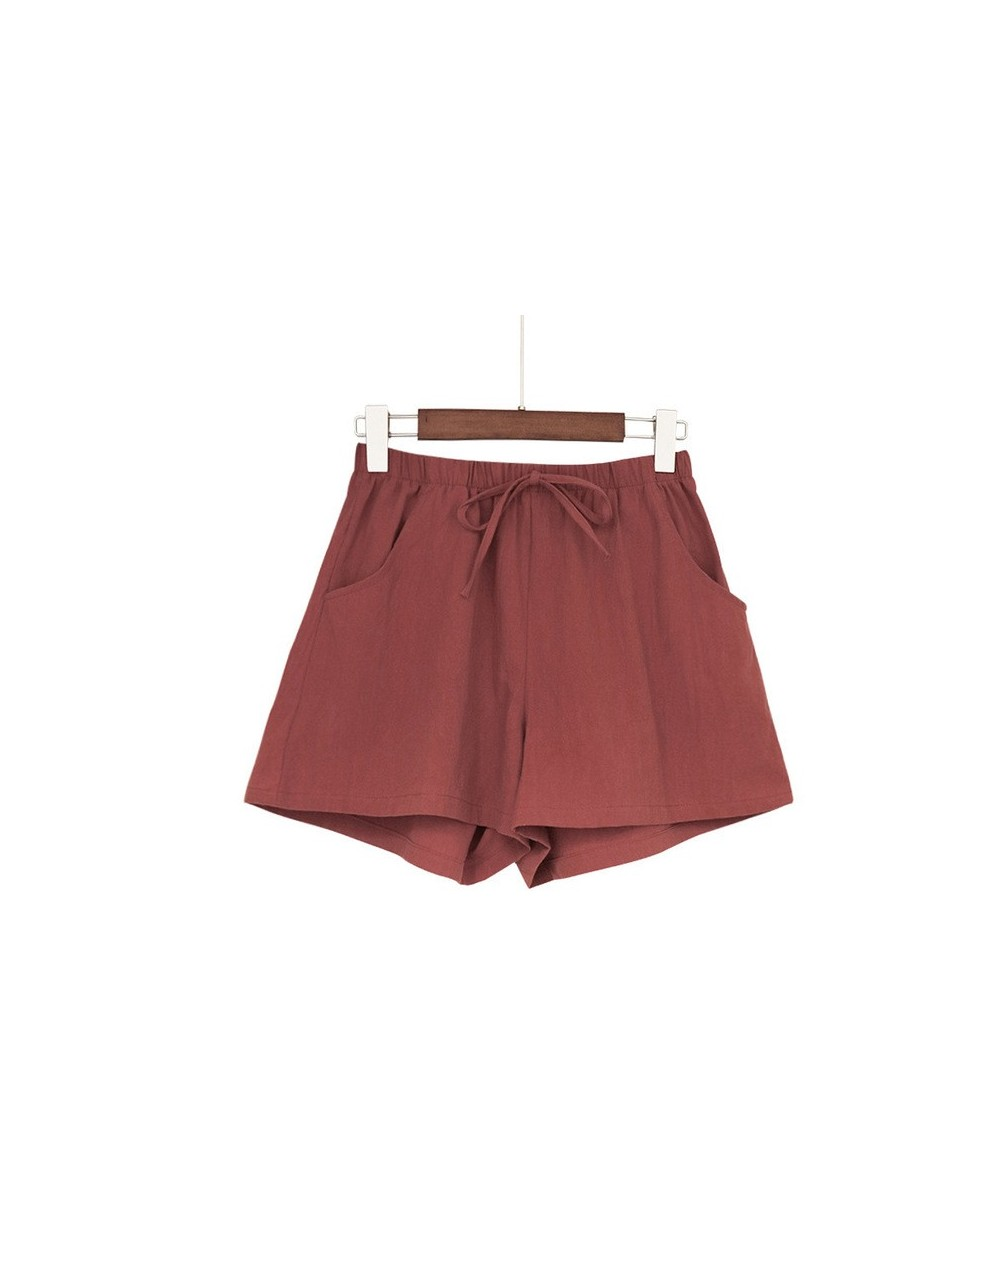 Droppshiping Women High Waist Loose Solid Color Shorts Casual for Summer Sport Running Beach J55 - Red - 5J111182536817-8